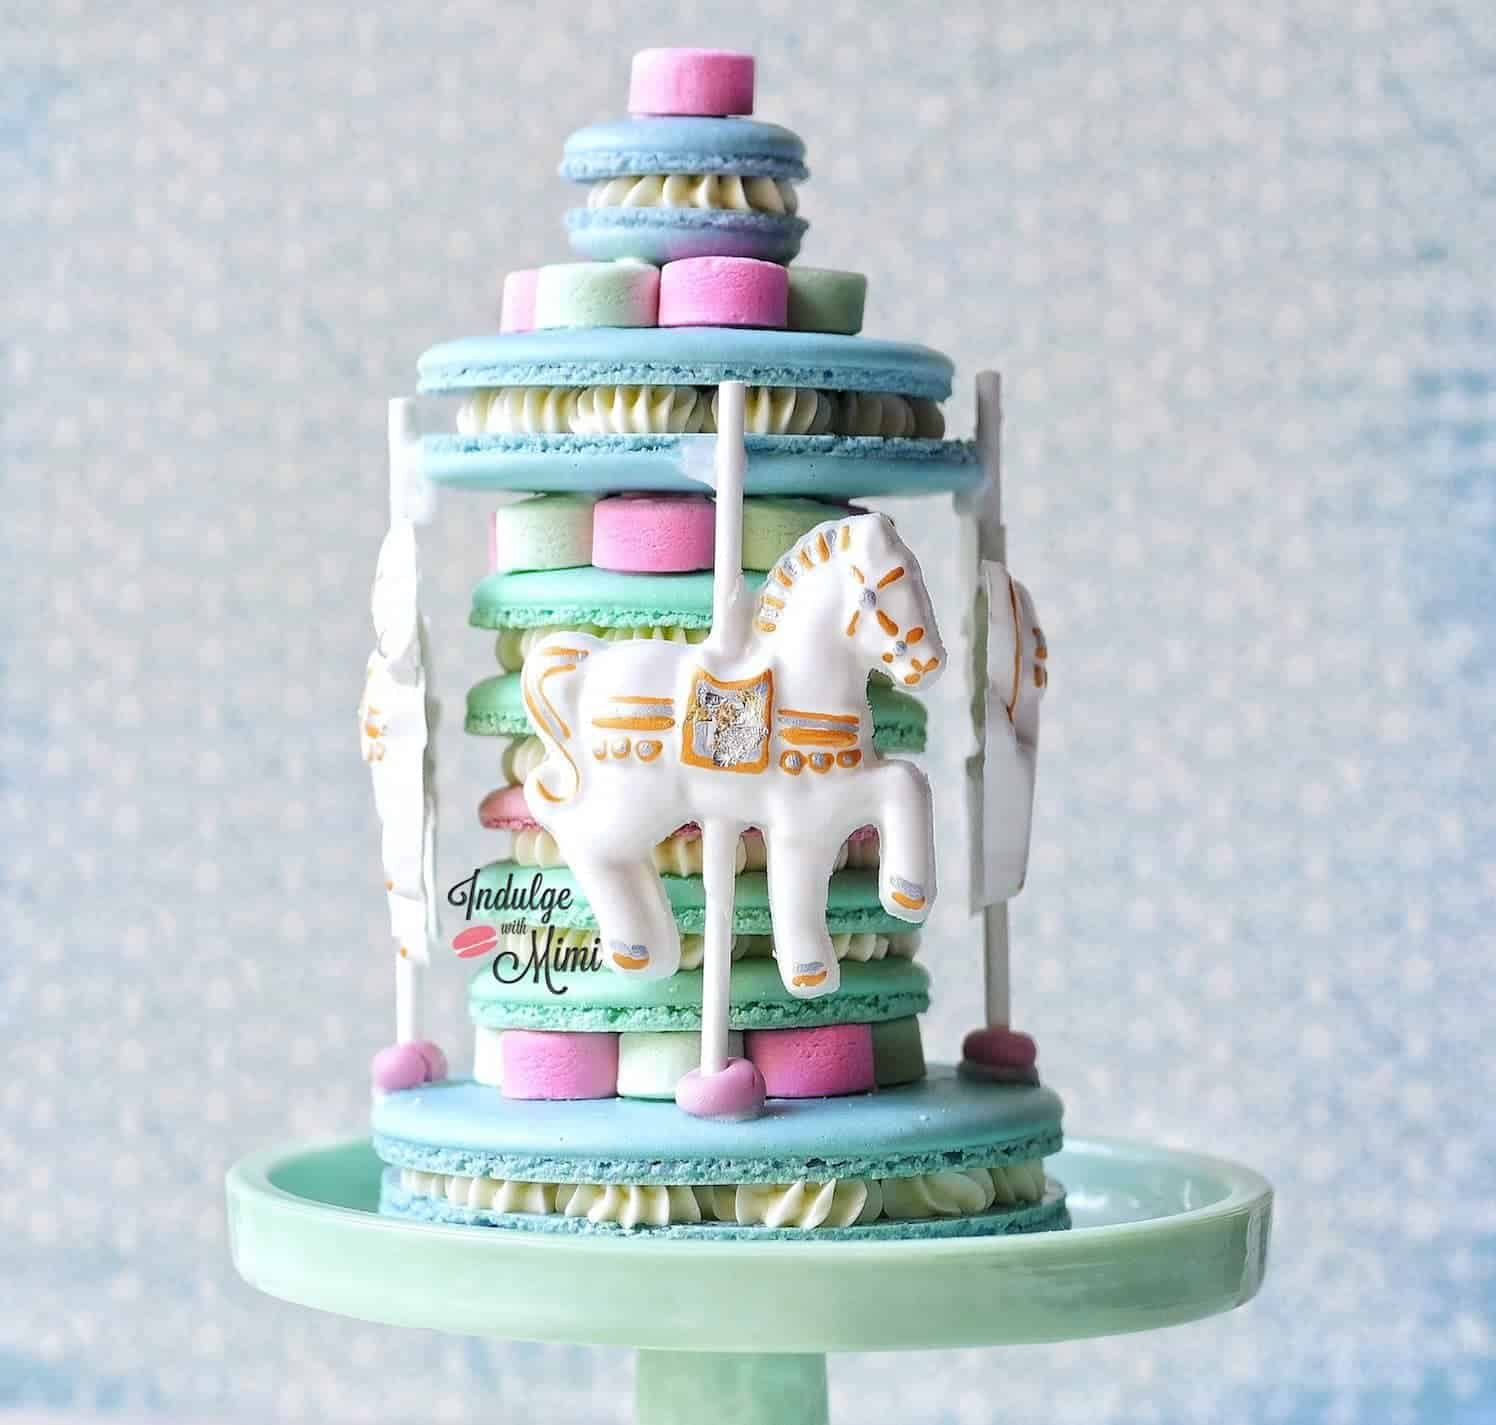 Horse Carousel Macaron Cake Collab With Silpat Mats